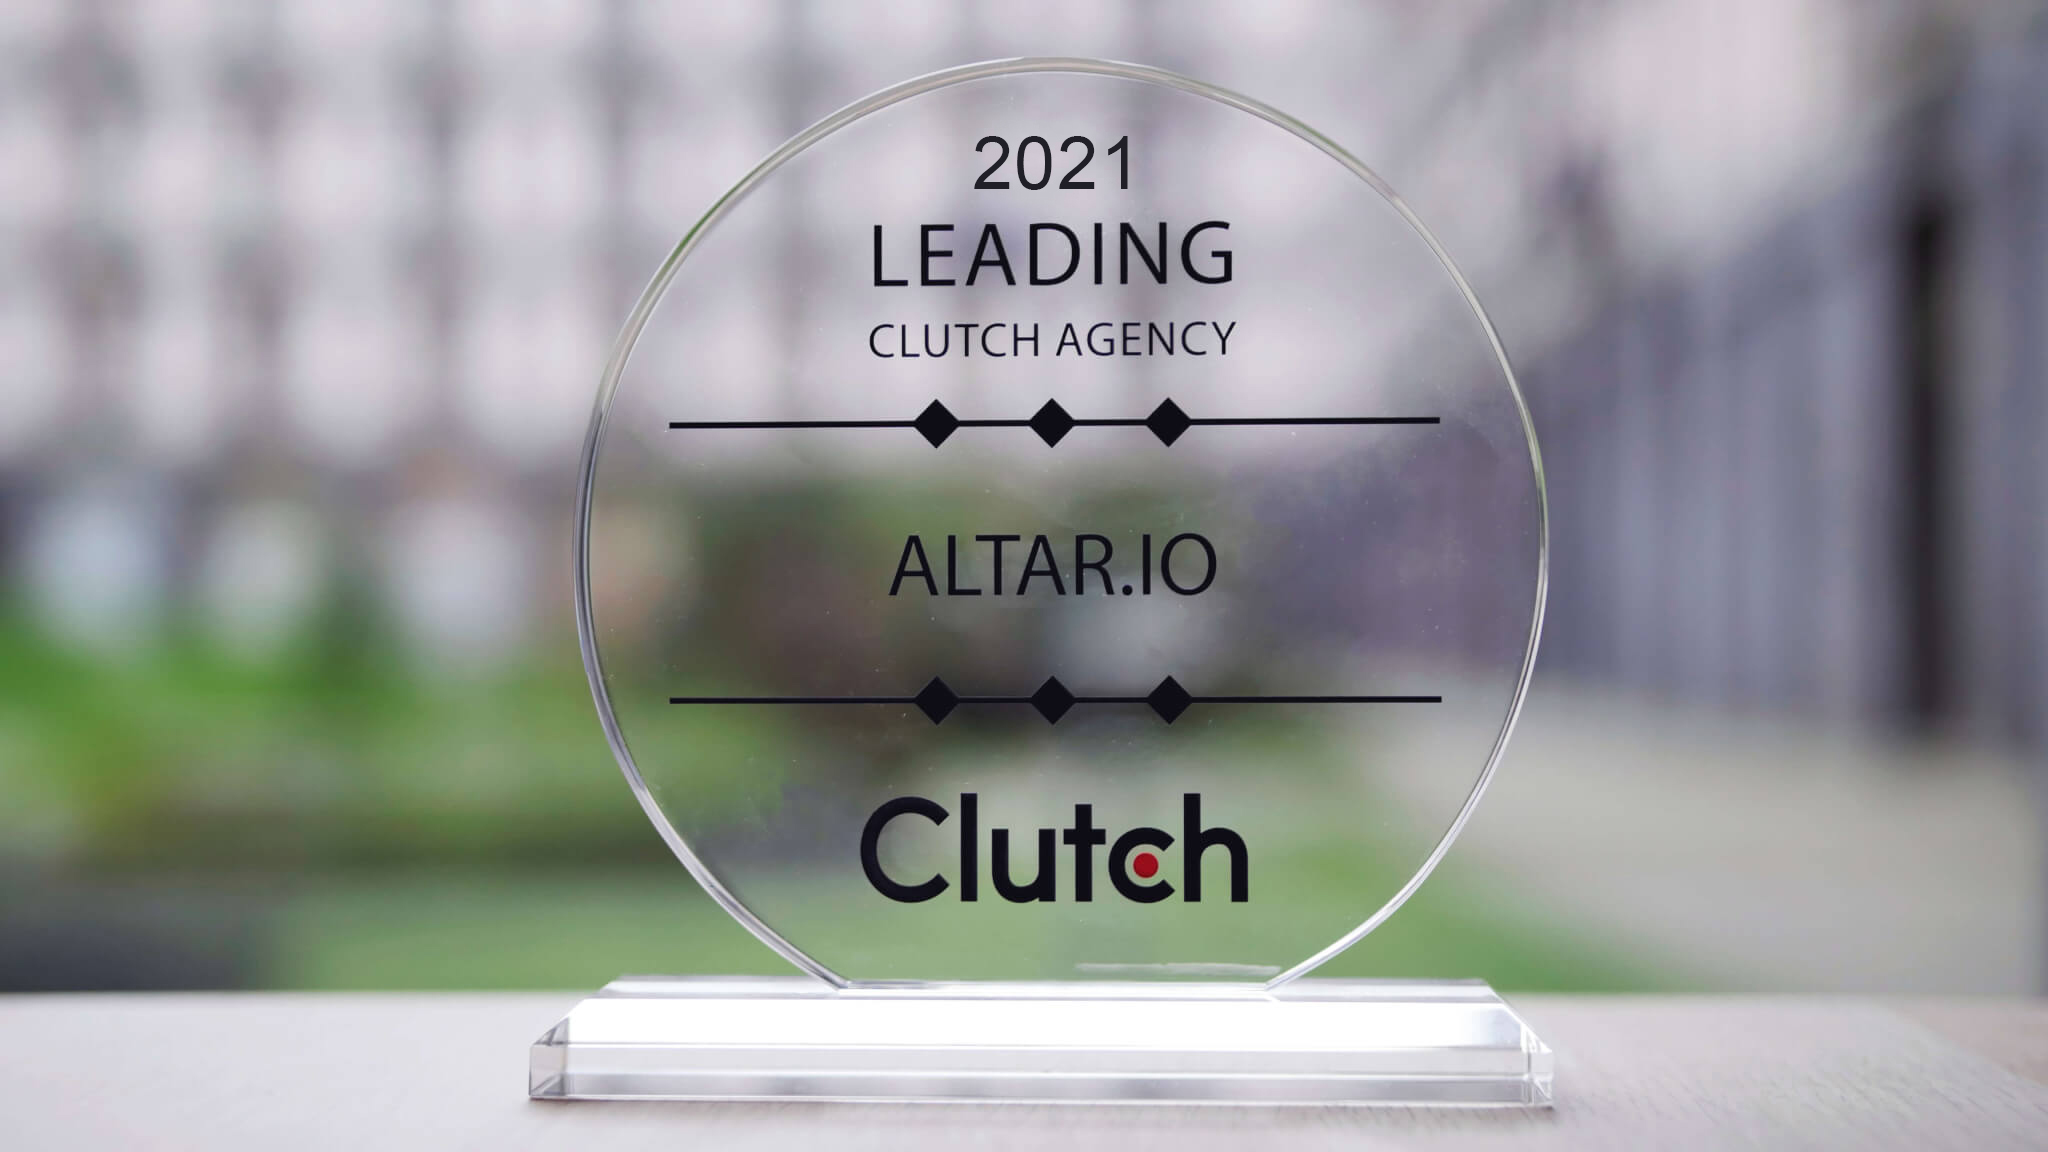 Altar.io's 2021 top Development Clutch Award